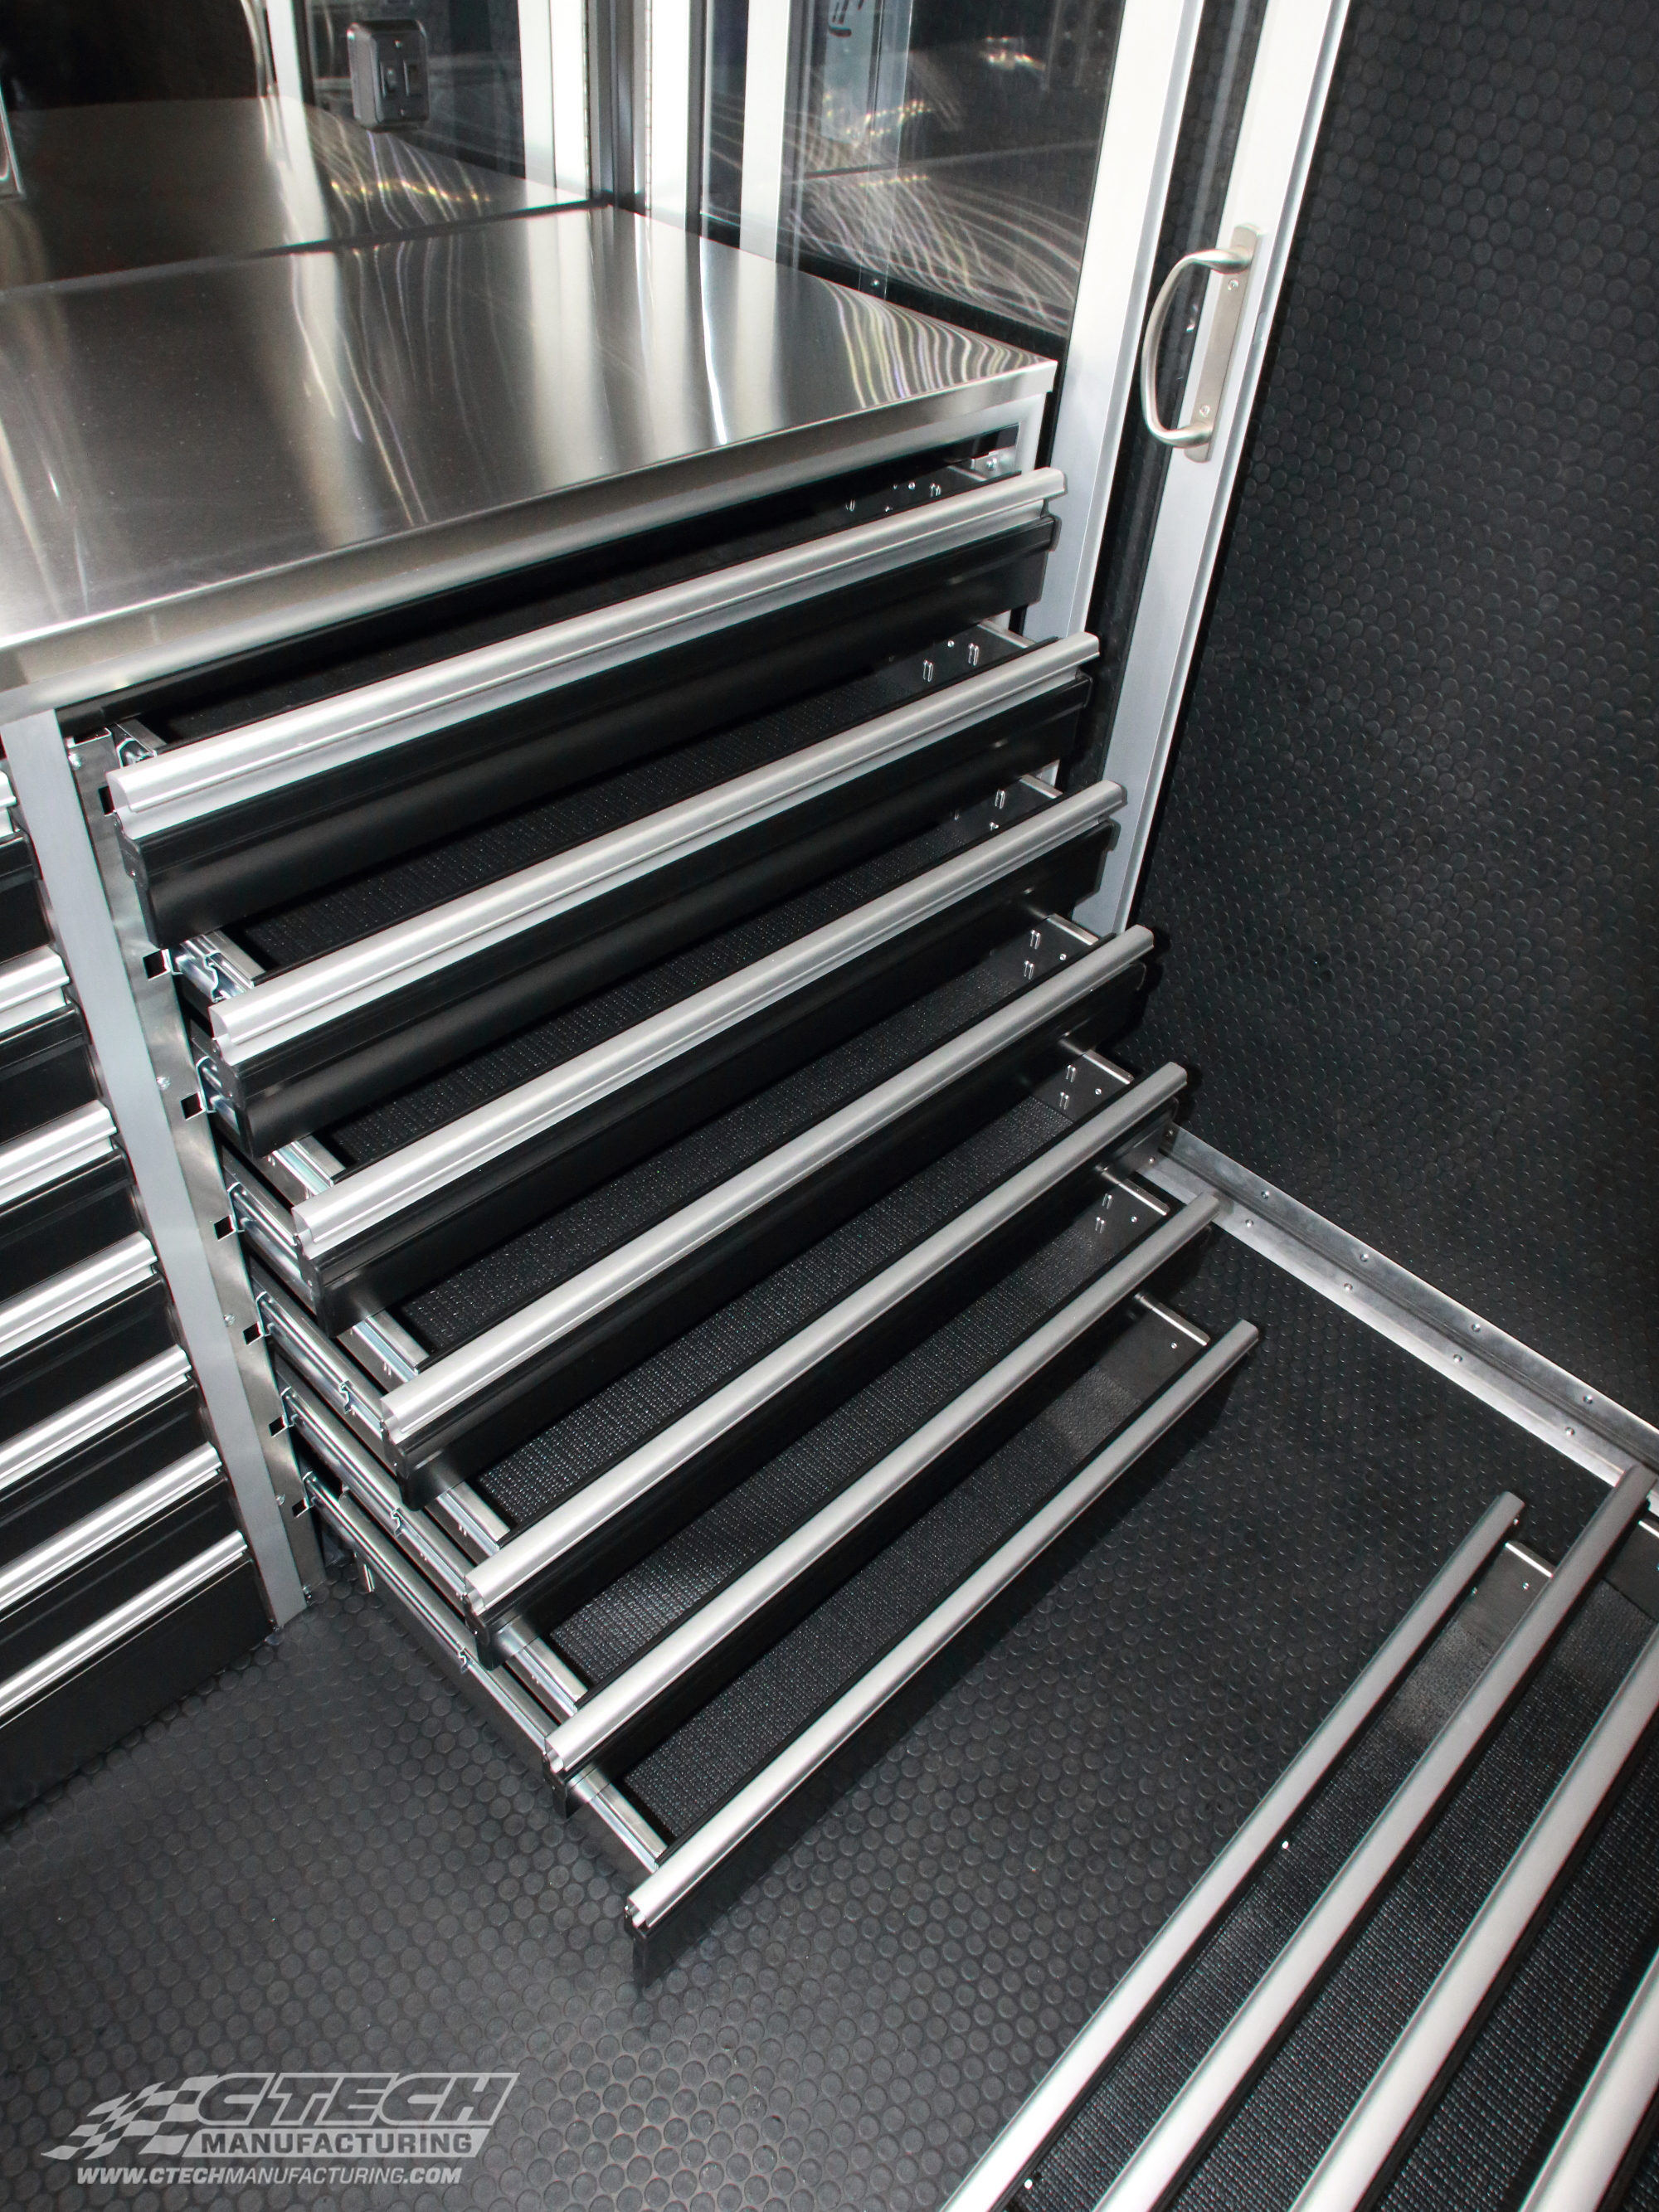 If there's an opening, there's space for a CTech drawer insert! This trailer cabinet unit came with cheap drawers, but the owners managed to fit tough, innovative CTech drawers seamlessly into the stock system.